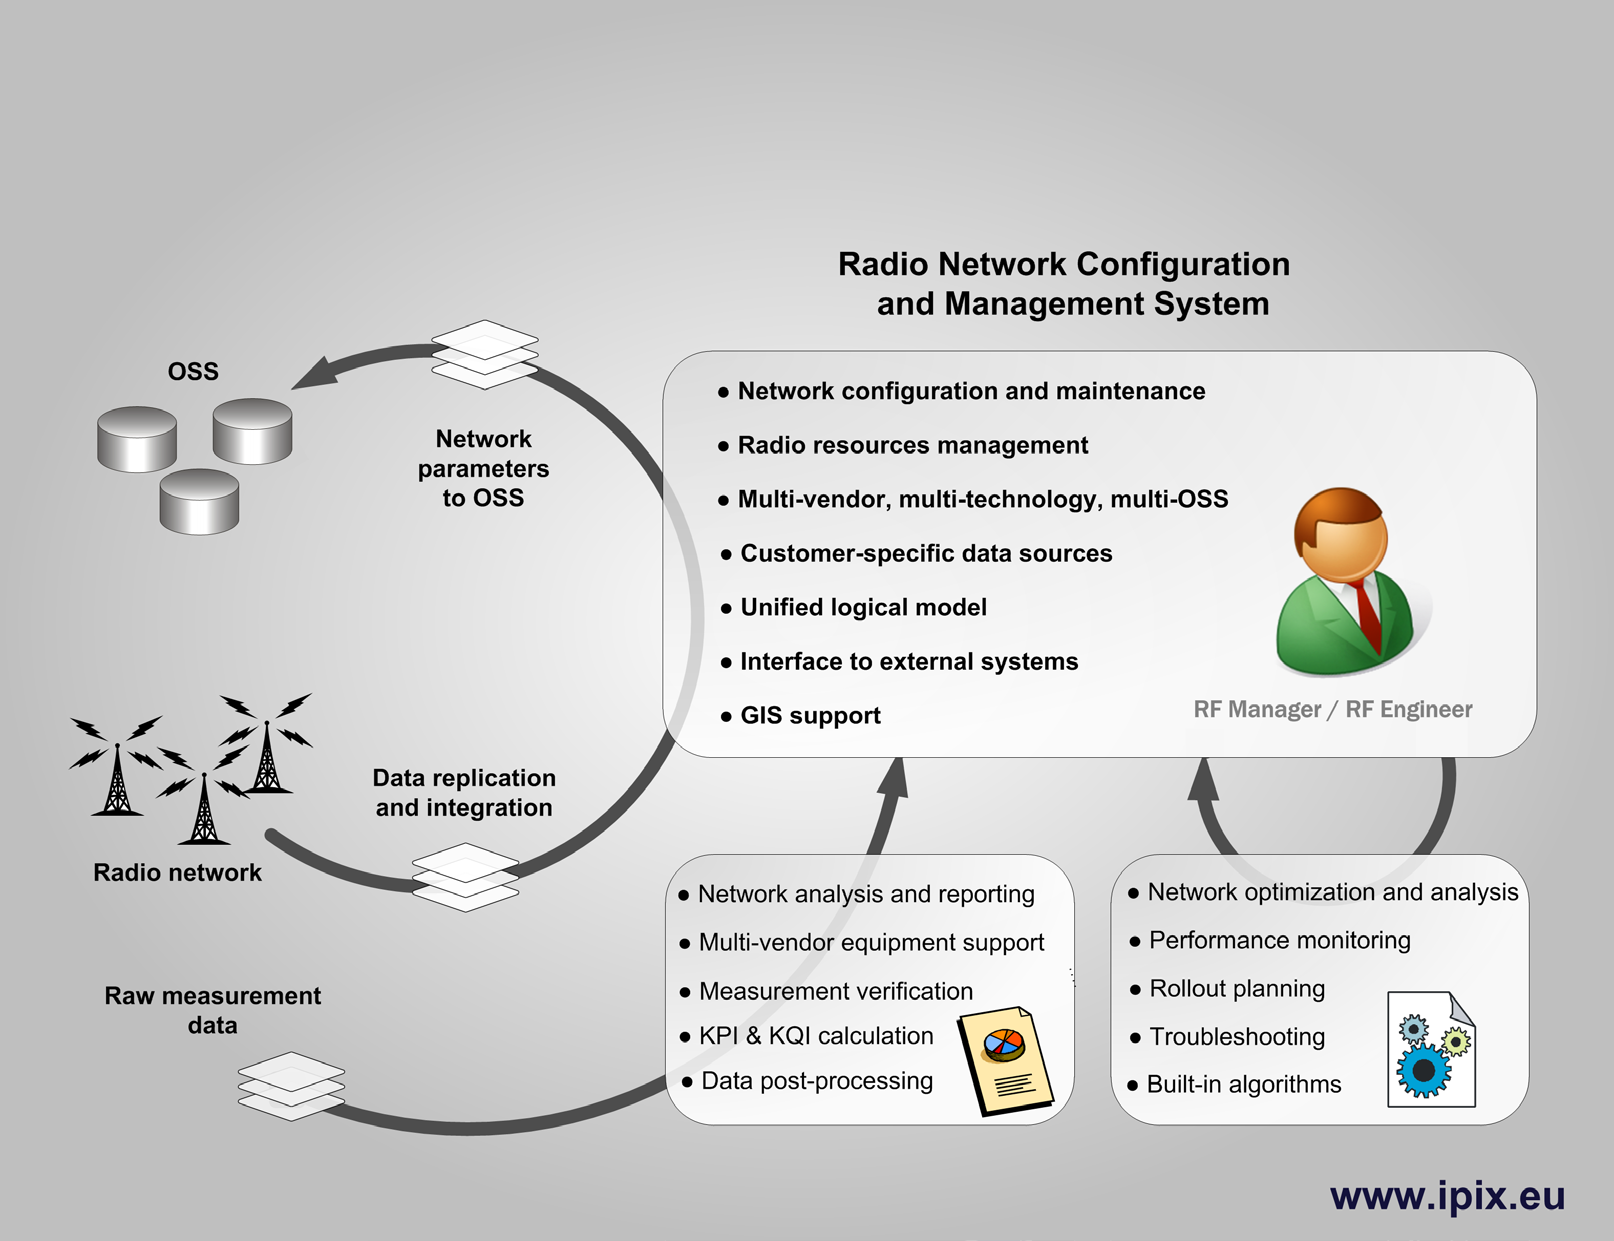 Radio Network Configuration and Management System - PDF